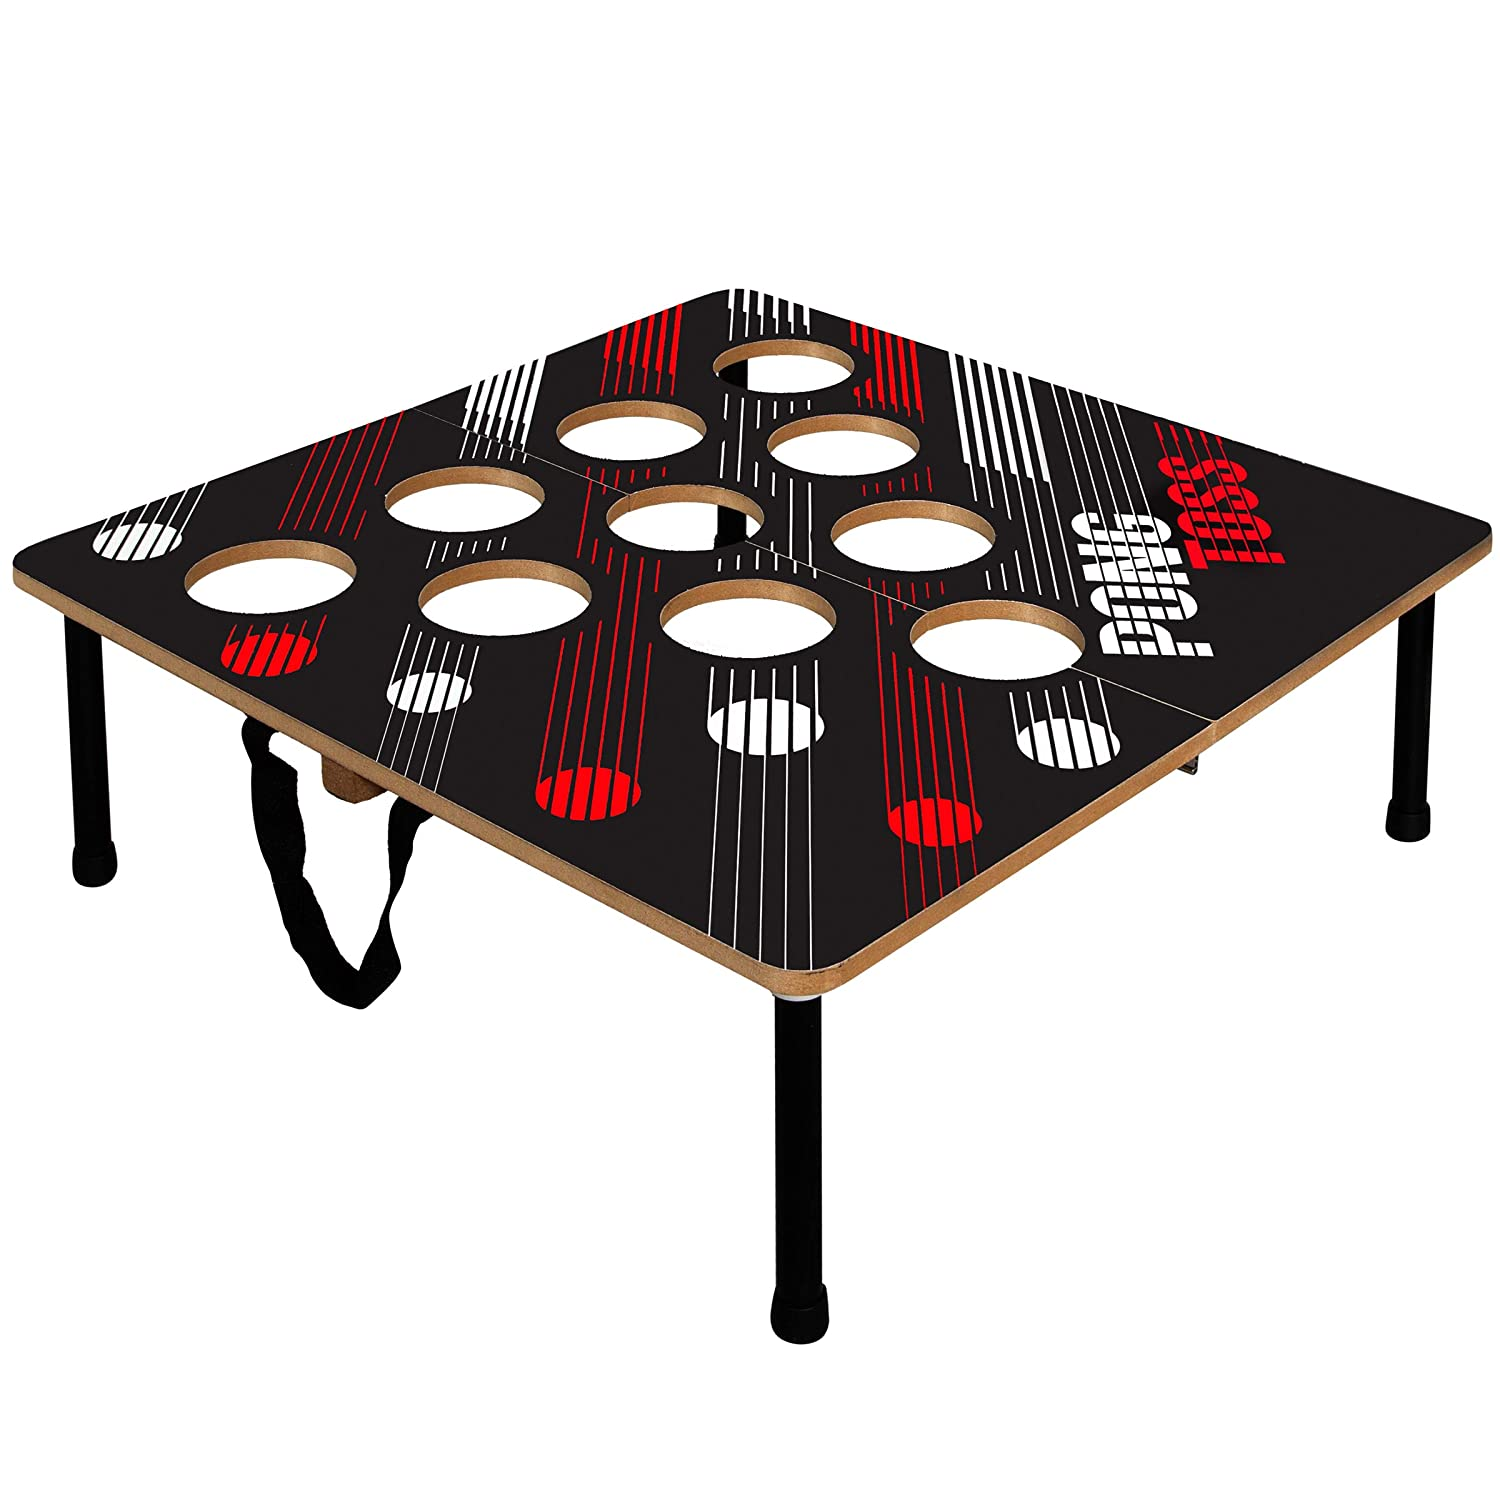 Black Series Portable Beer Pong Set with 2 Folding Tables and 6 Ping Pong  Balls, Classic Drinking Game for Adults, Best Party Games, Collapsible for